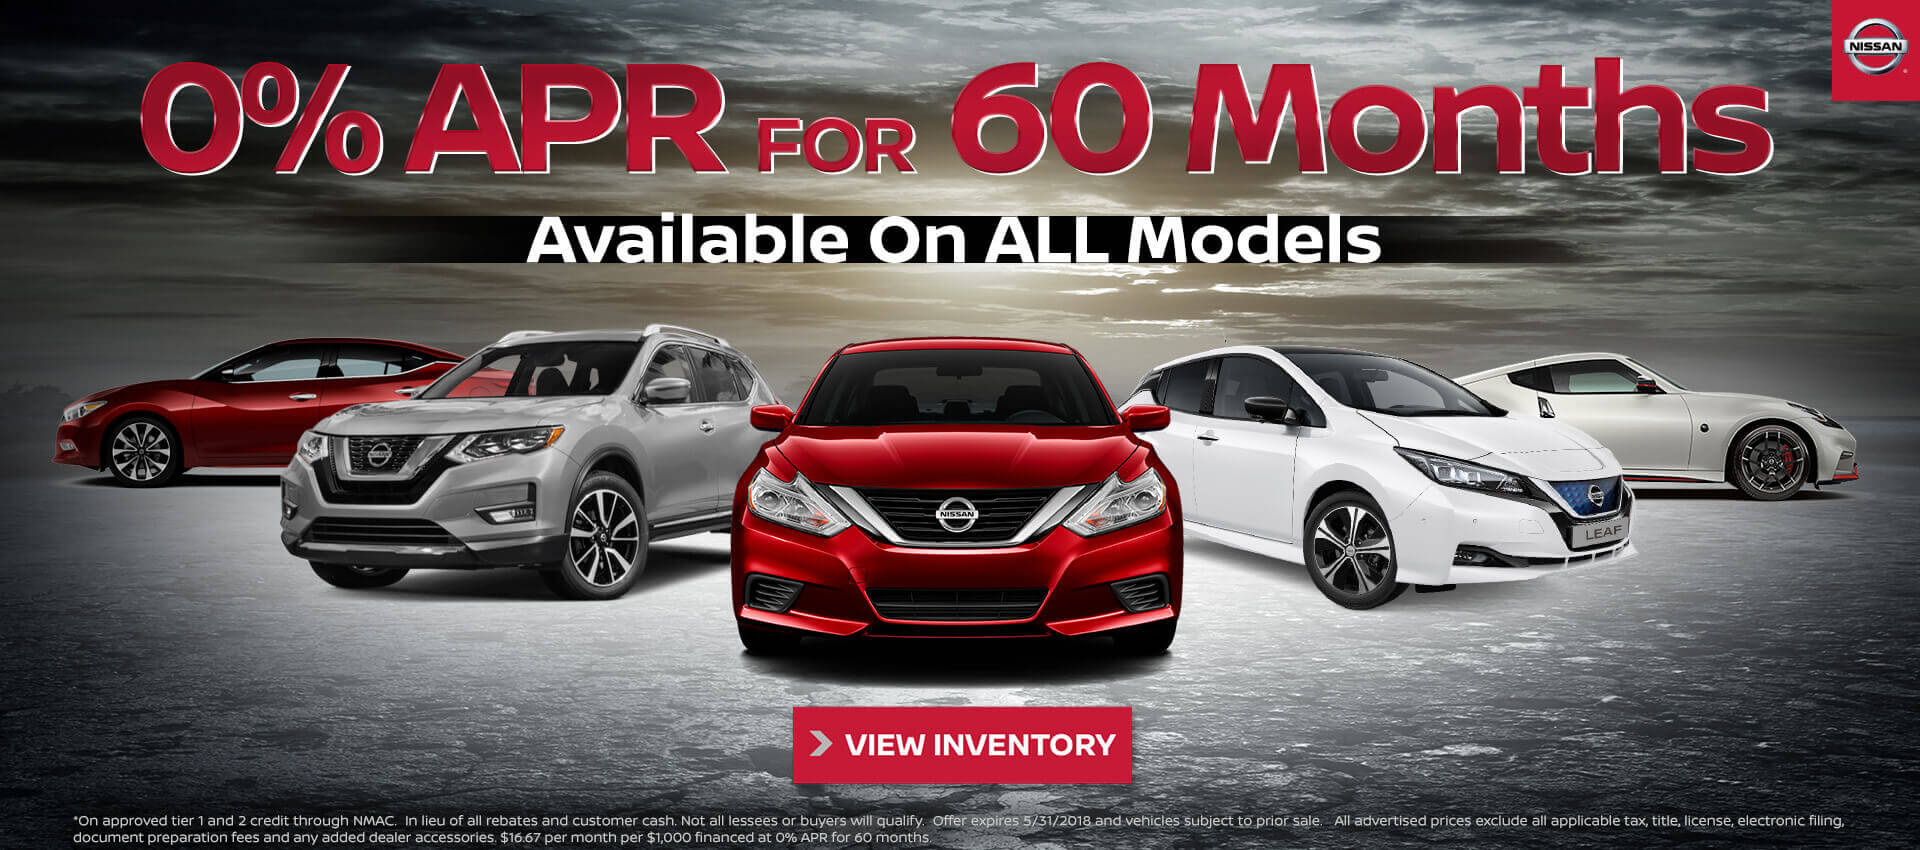 0% APR for 60